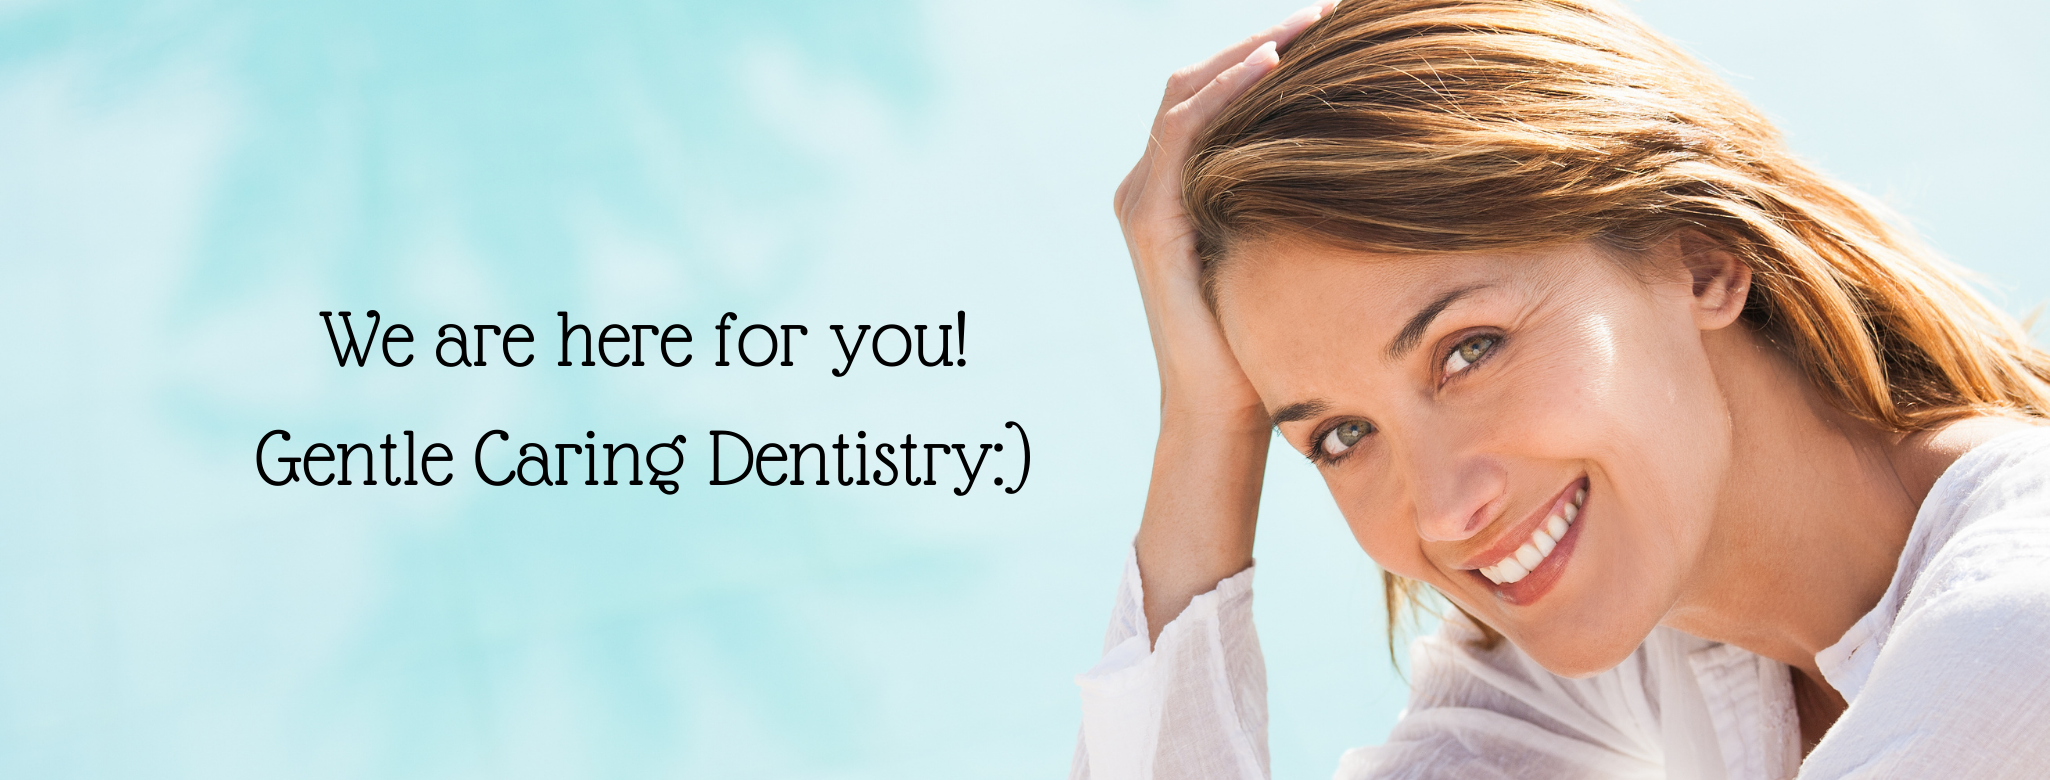 New patient offer Indooroopilly Dentist 4068